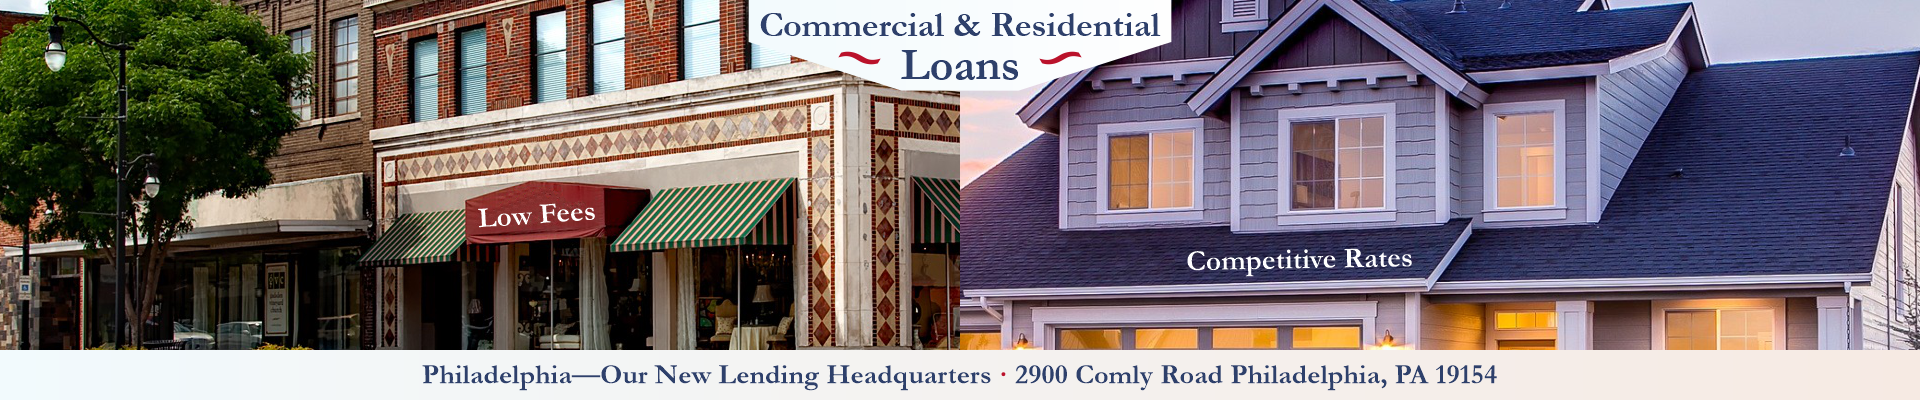 Commercial and Residential Loans